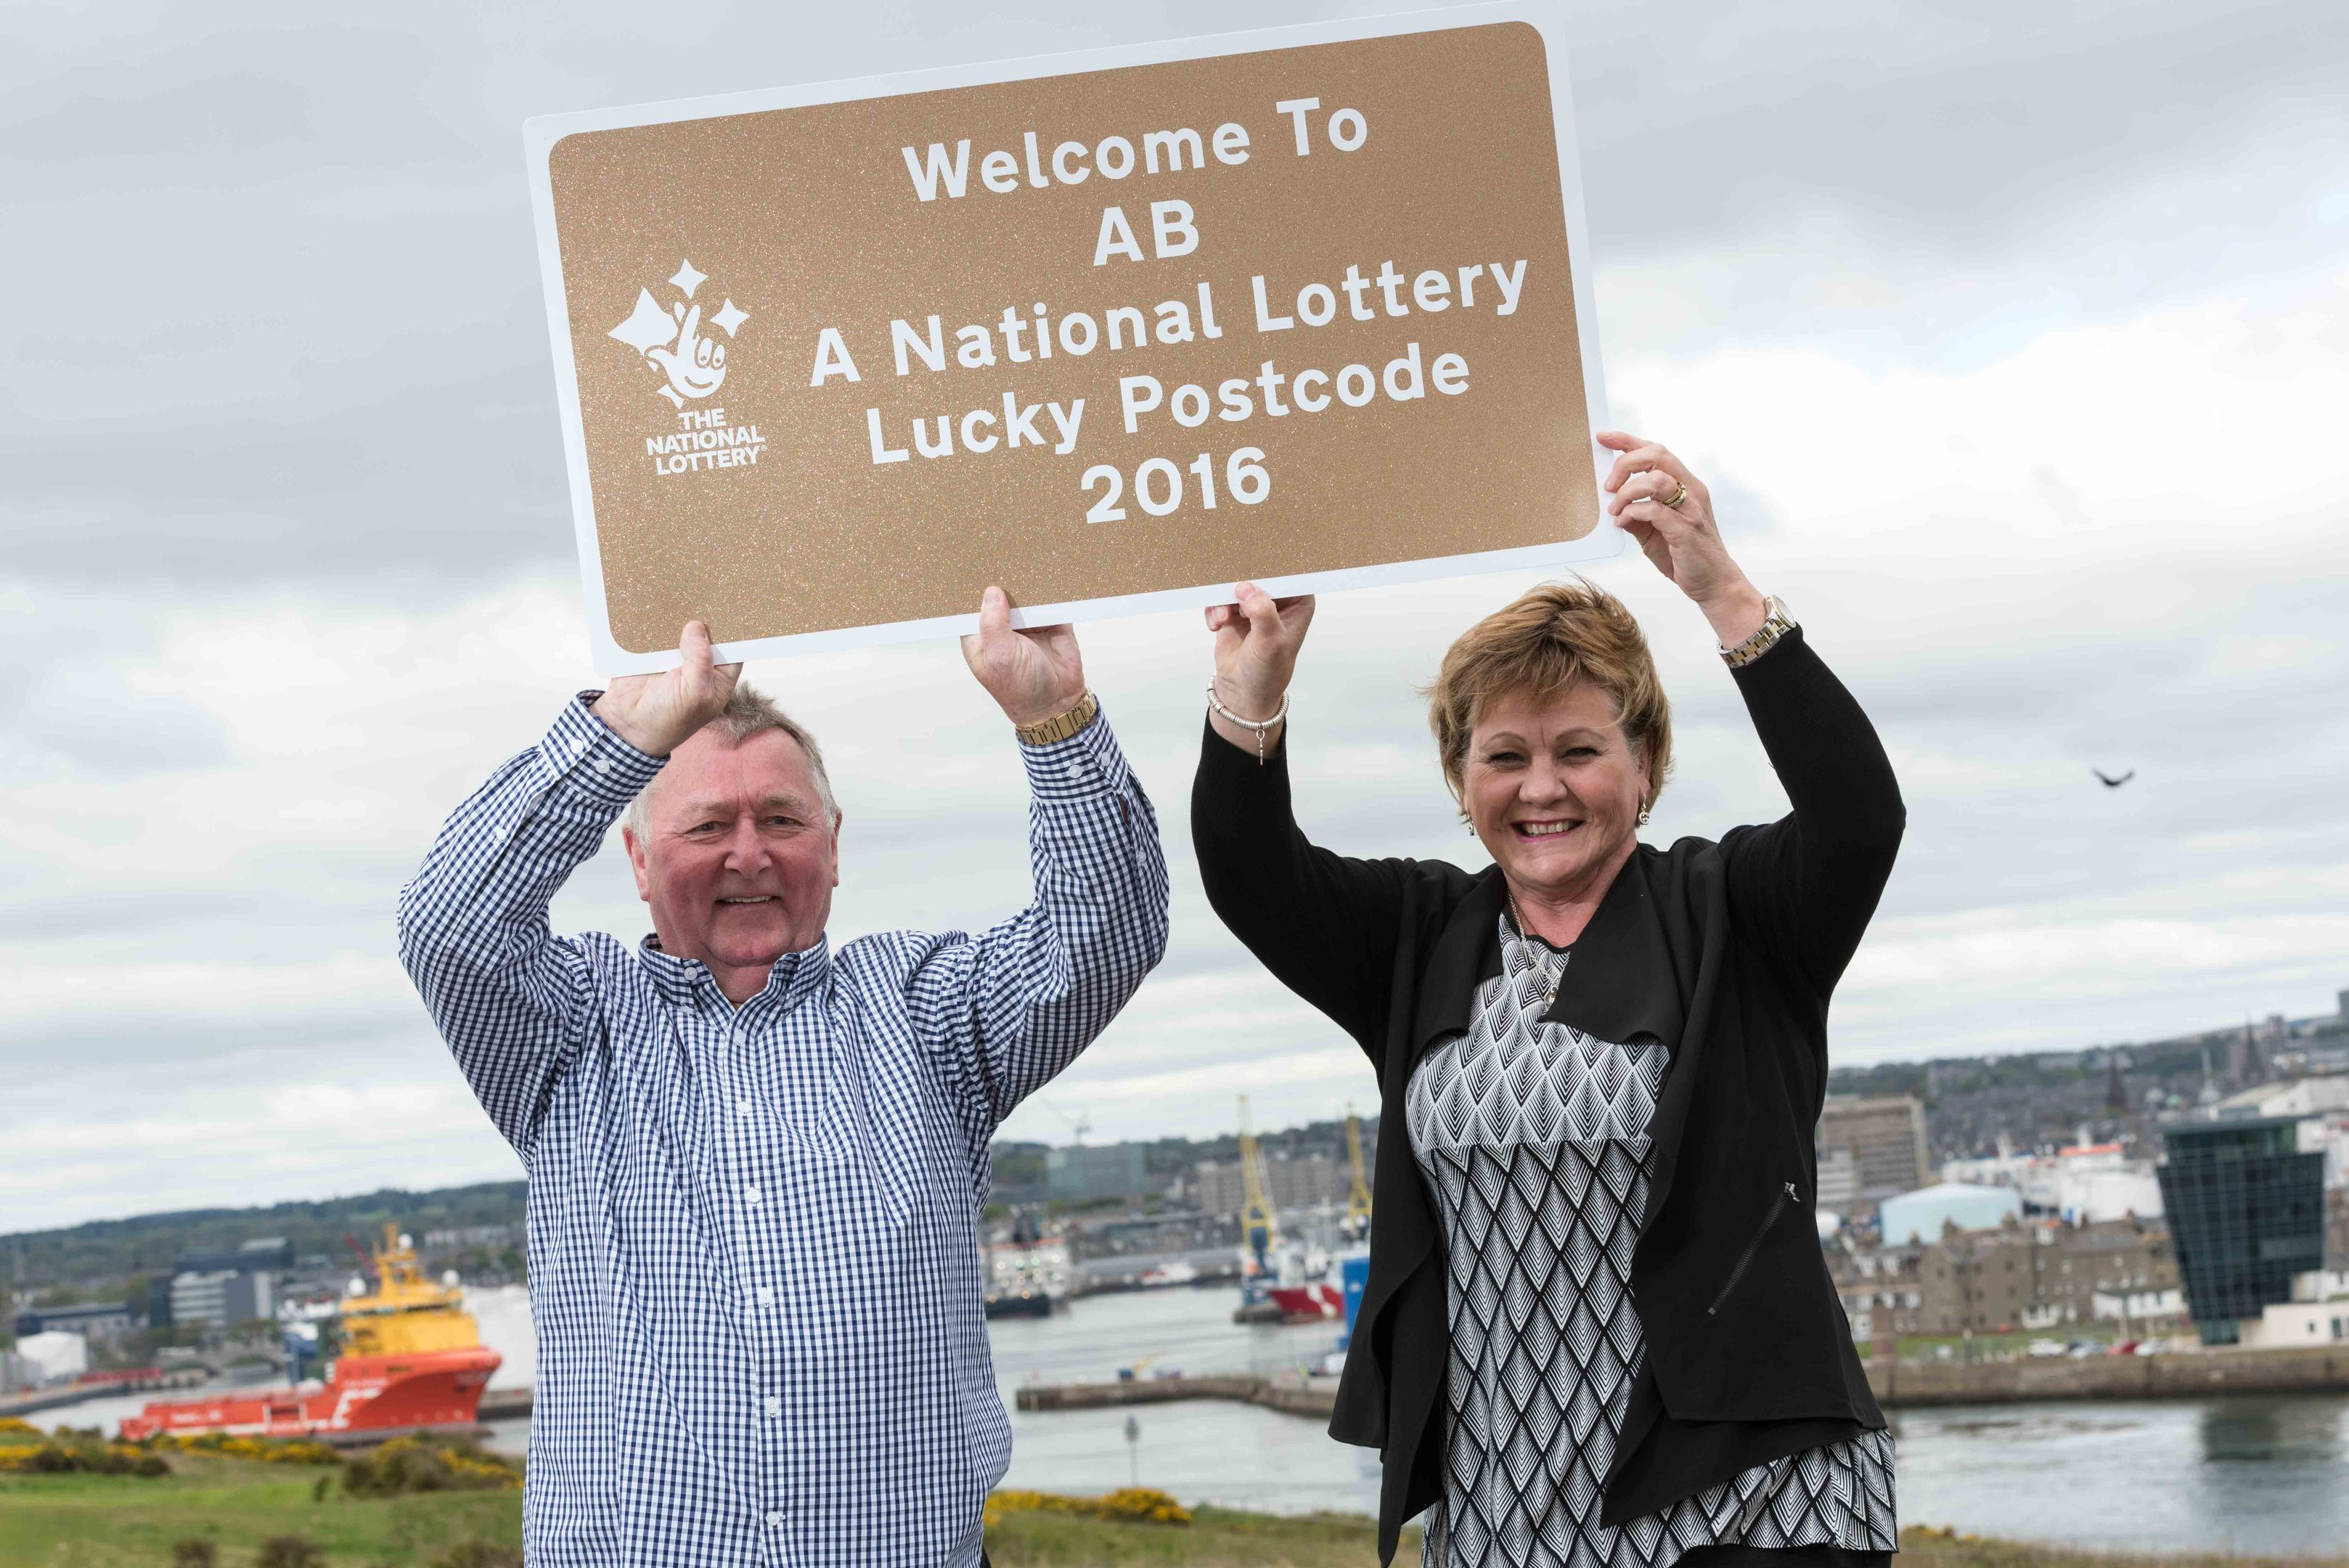 Duncan and Sheila won more than £4.5 million in February 2012.